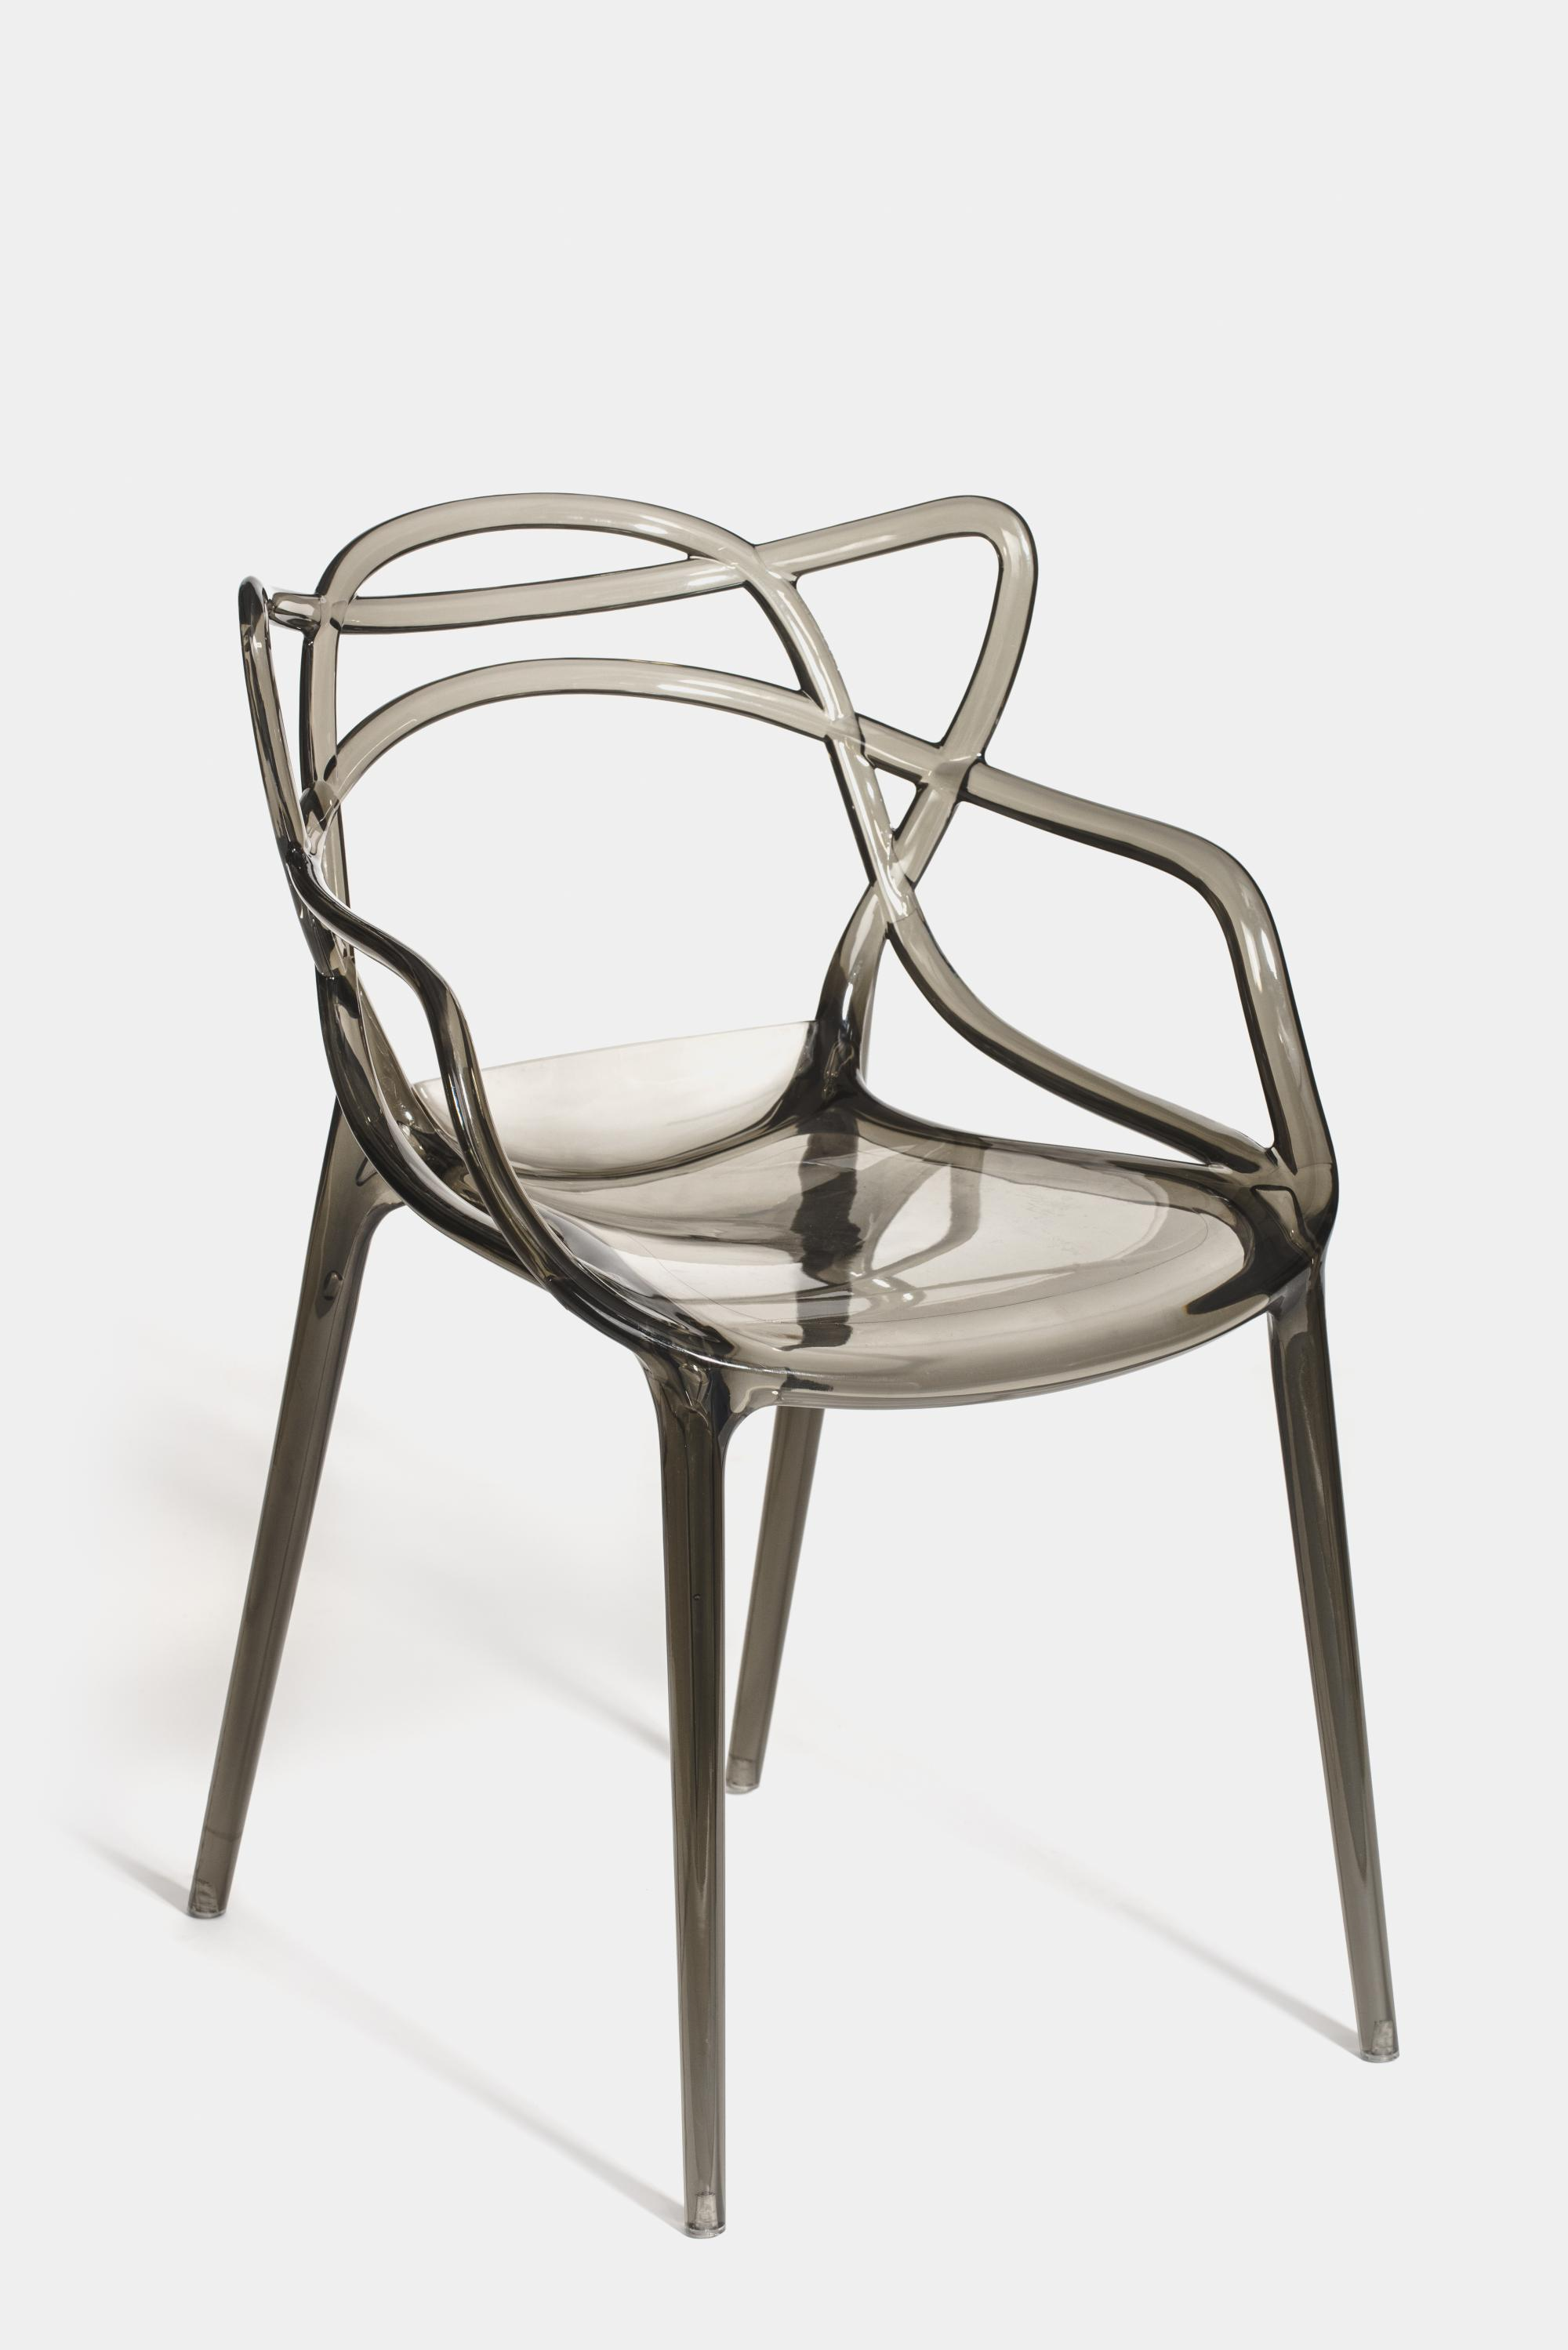 Forrest chair - Image 0